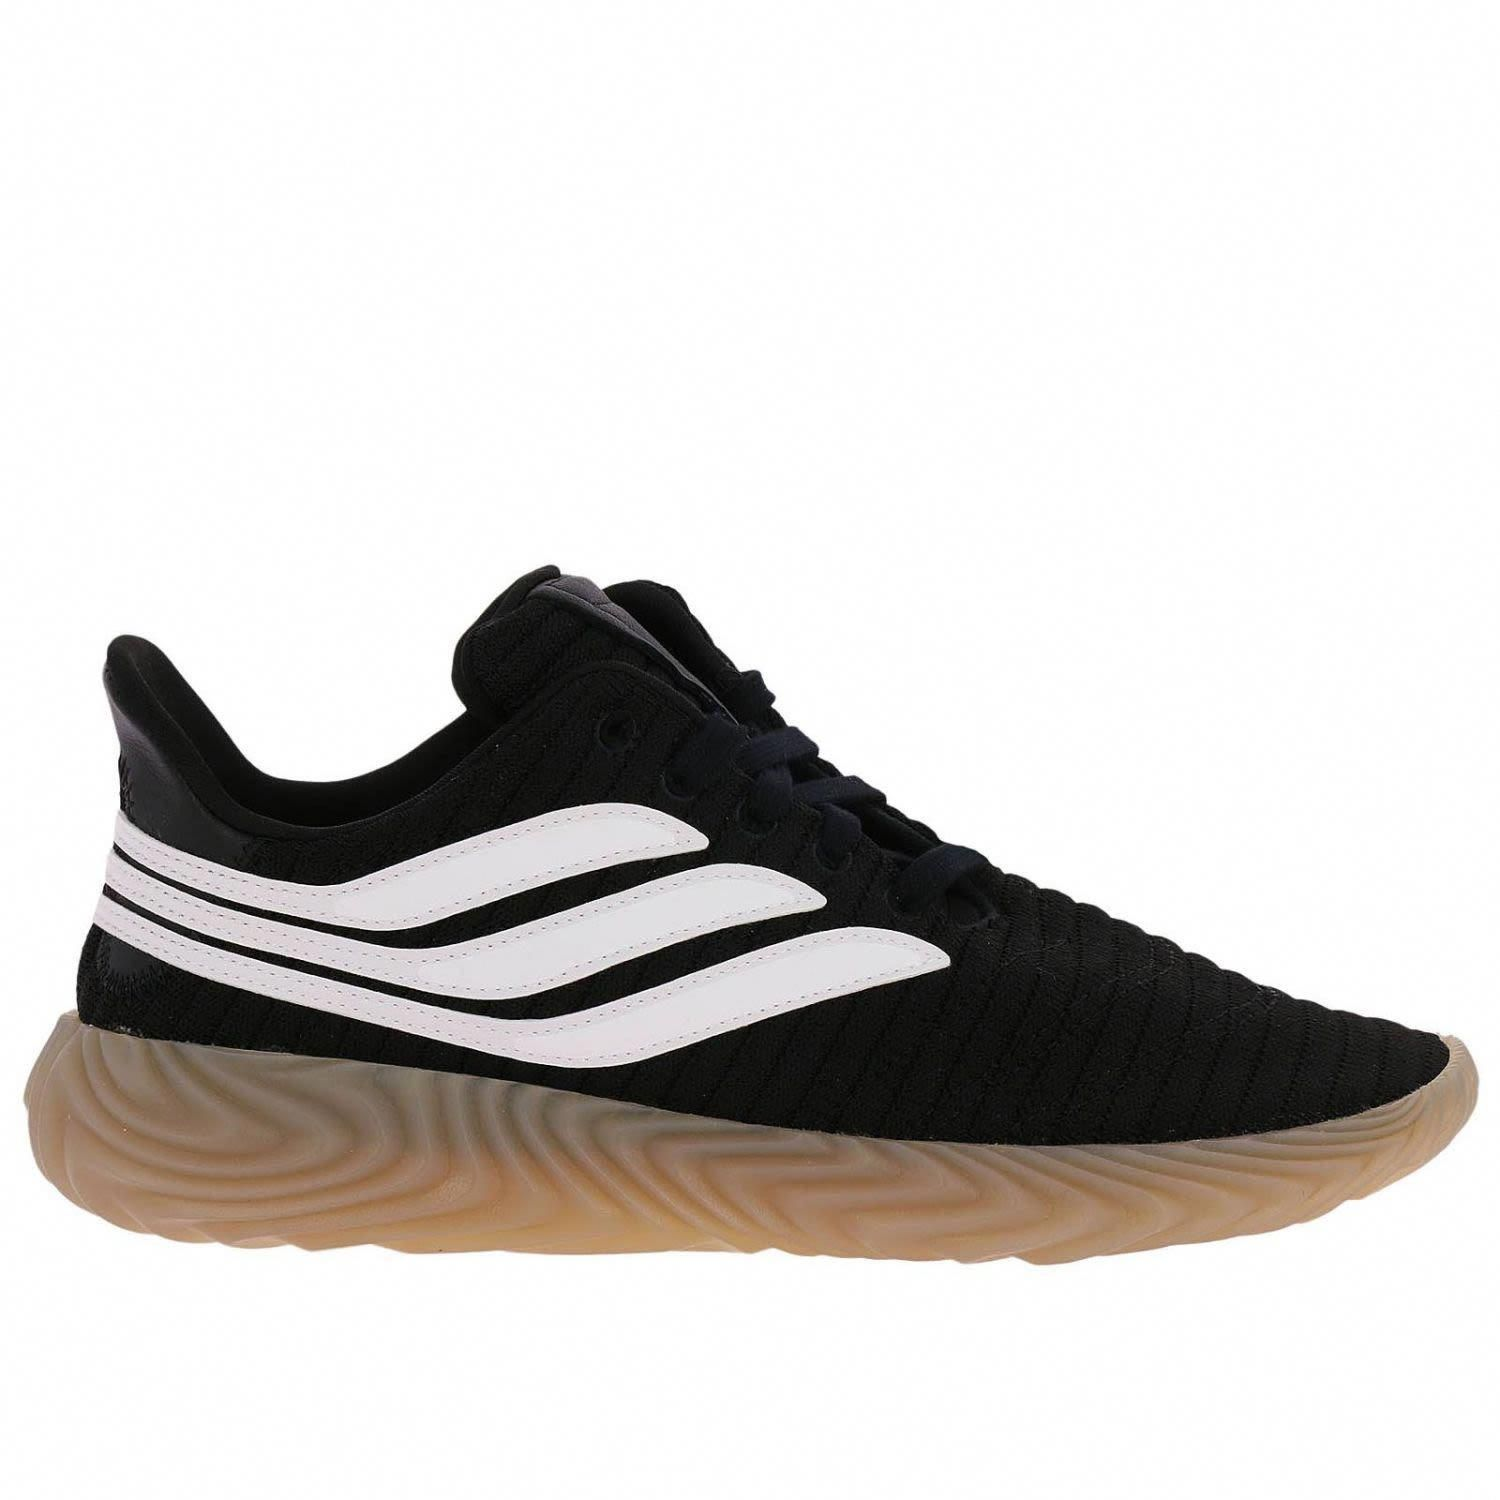 169f073c8570 ADIDAS ORIGINALS SHOES SHOES MEN ADIDAS ORIGINALS.  adidasoriginals  shoes     MensFashionSneakers